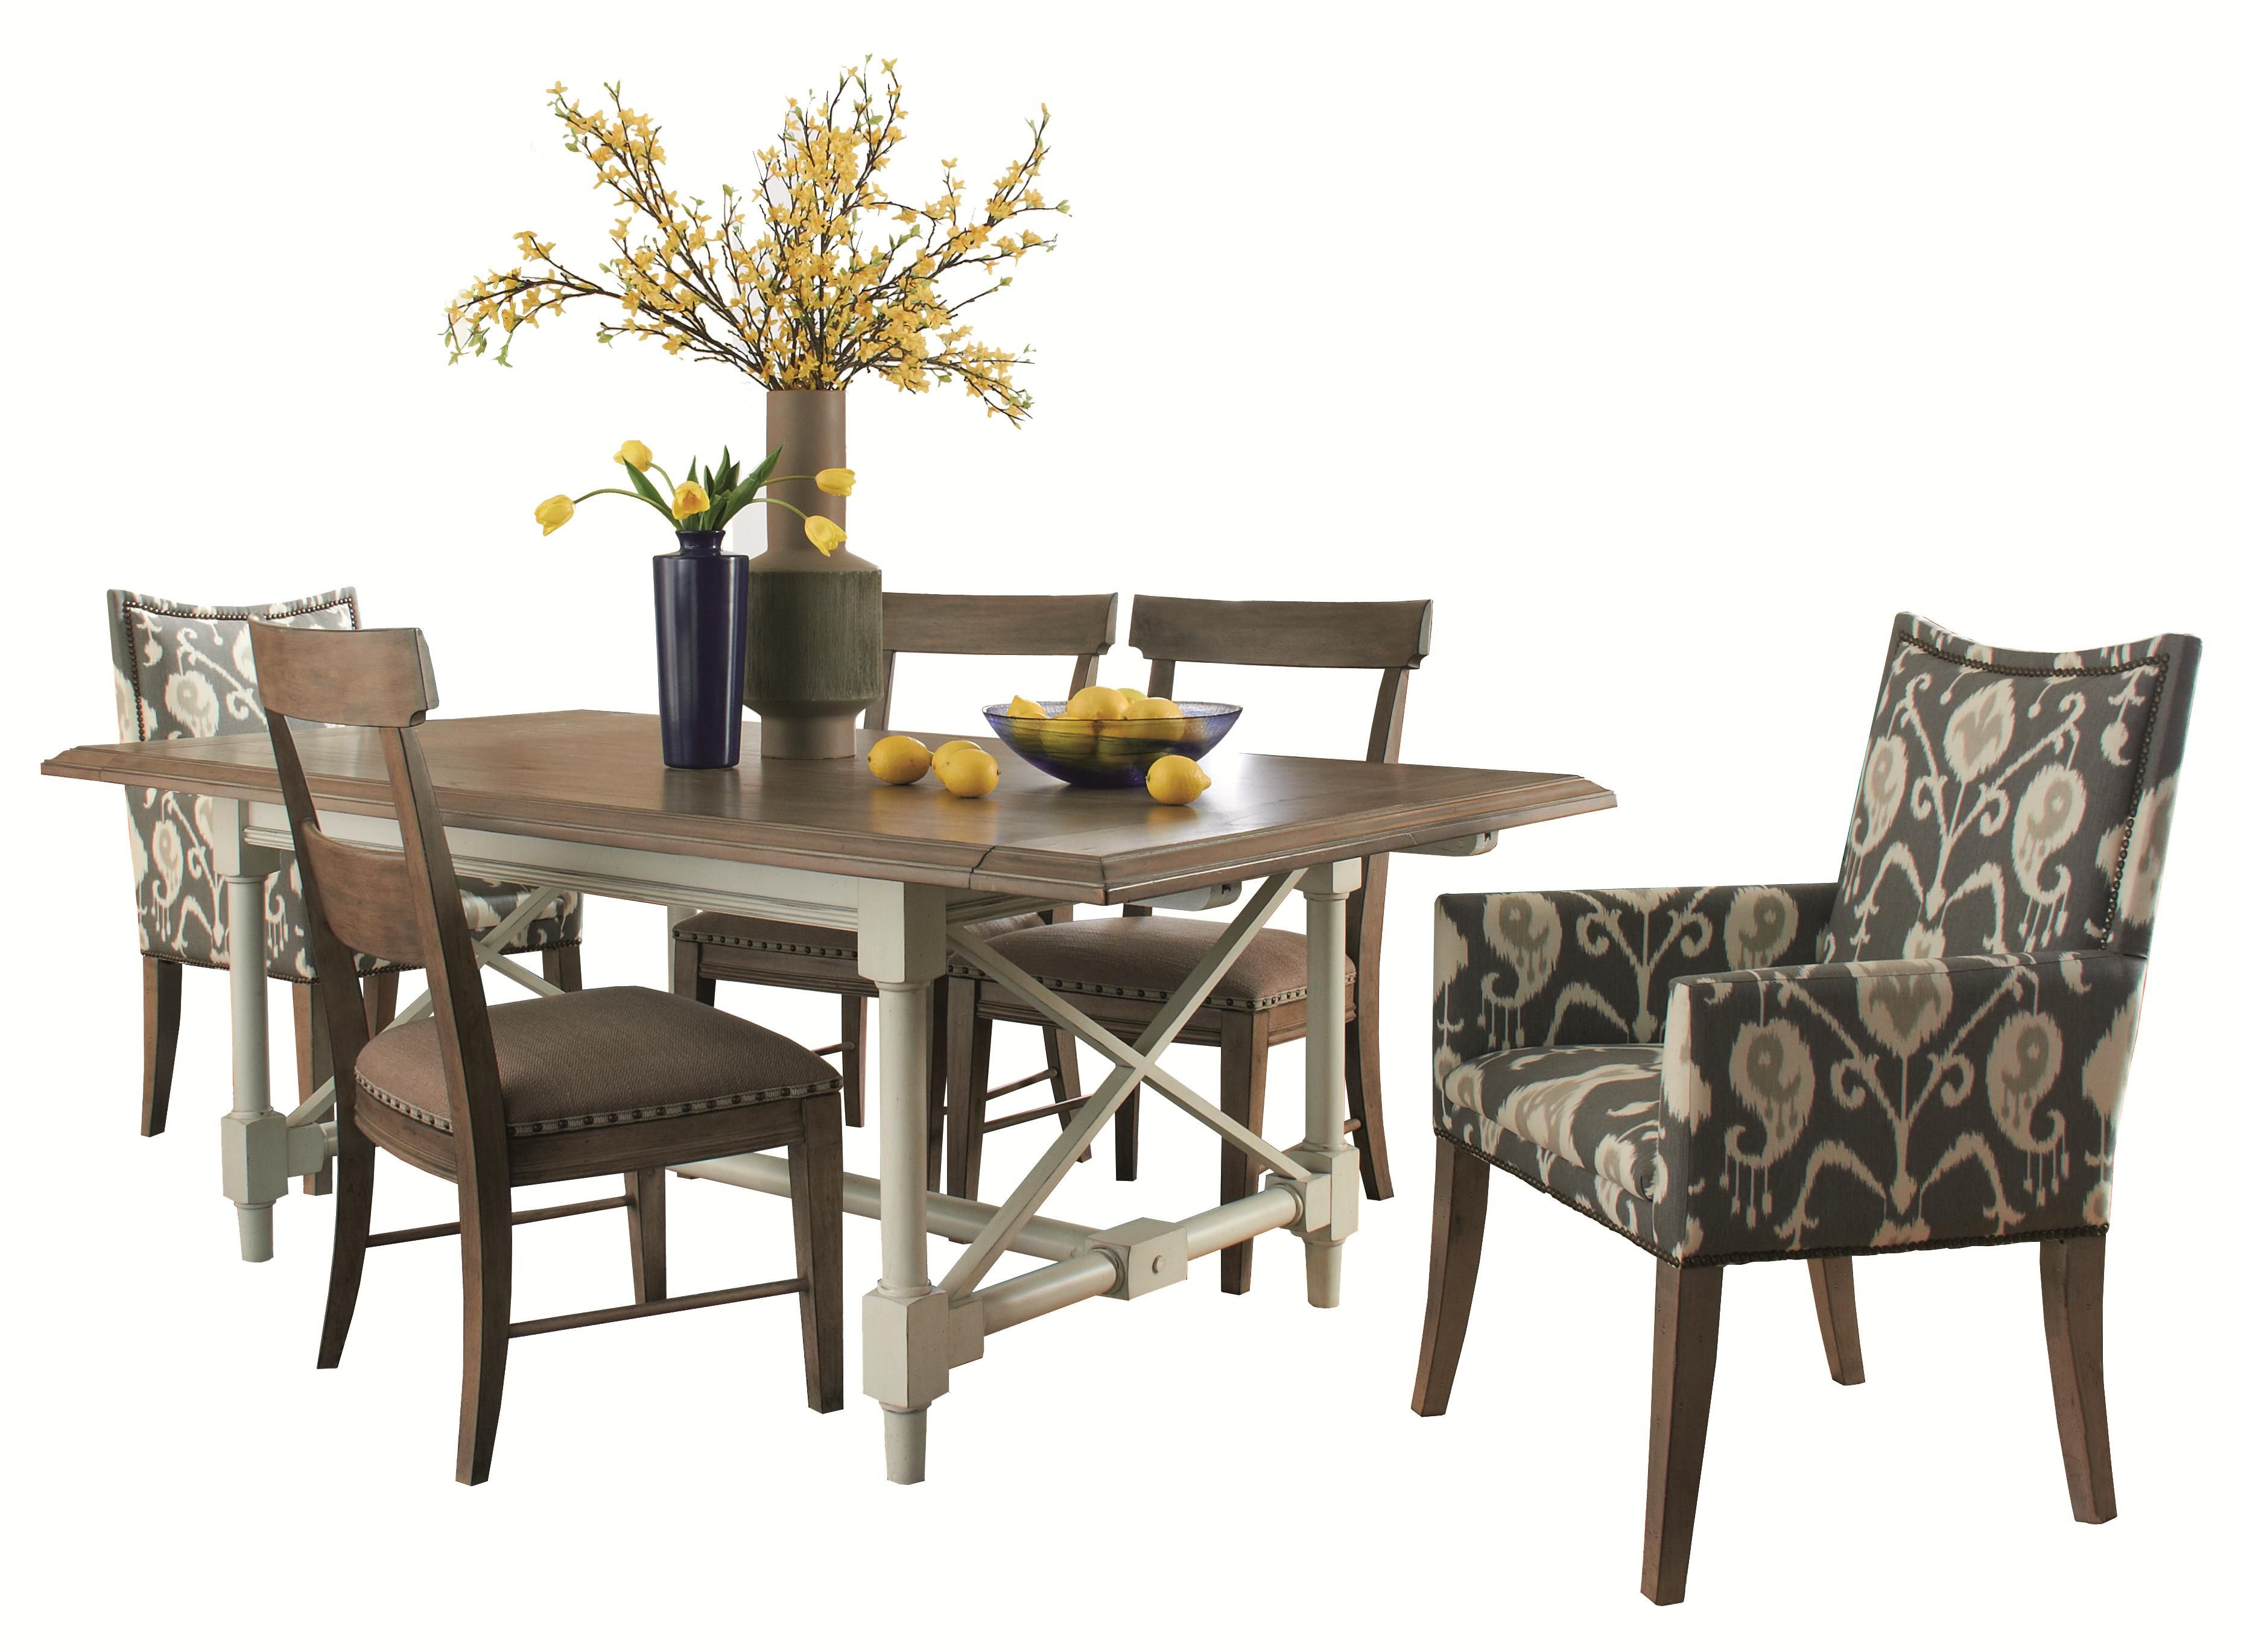 Caravan Dining Table And Chair Set By HGTV Home Furniture Collection